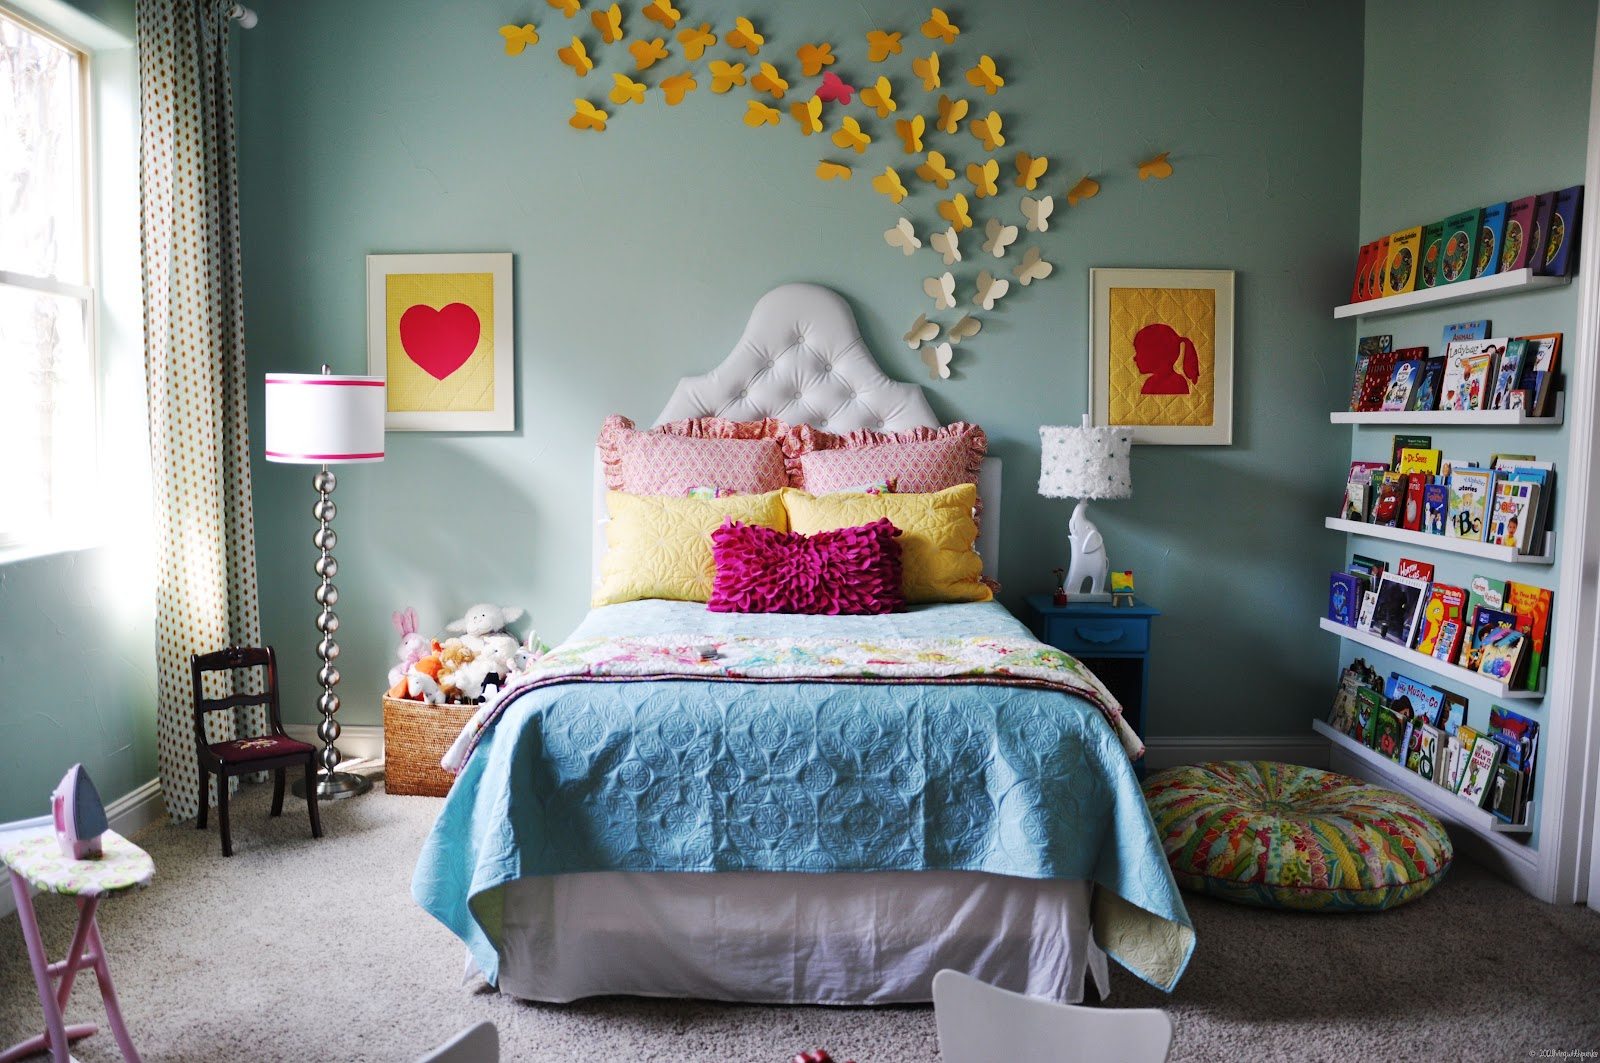 Big girl bedroom ideas - Decorating little girls room ...